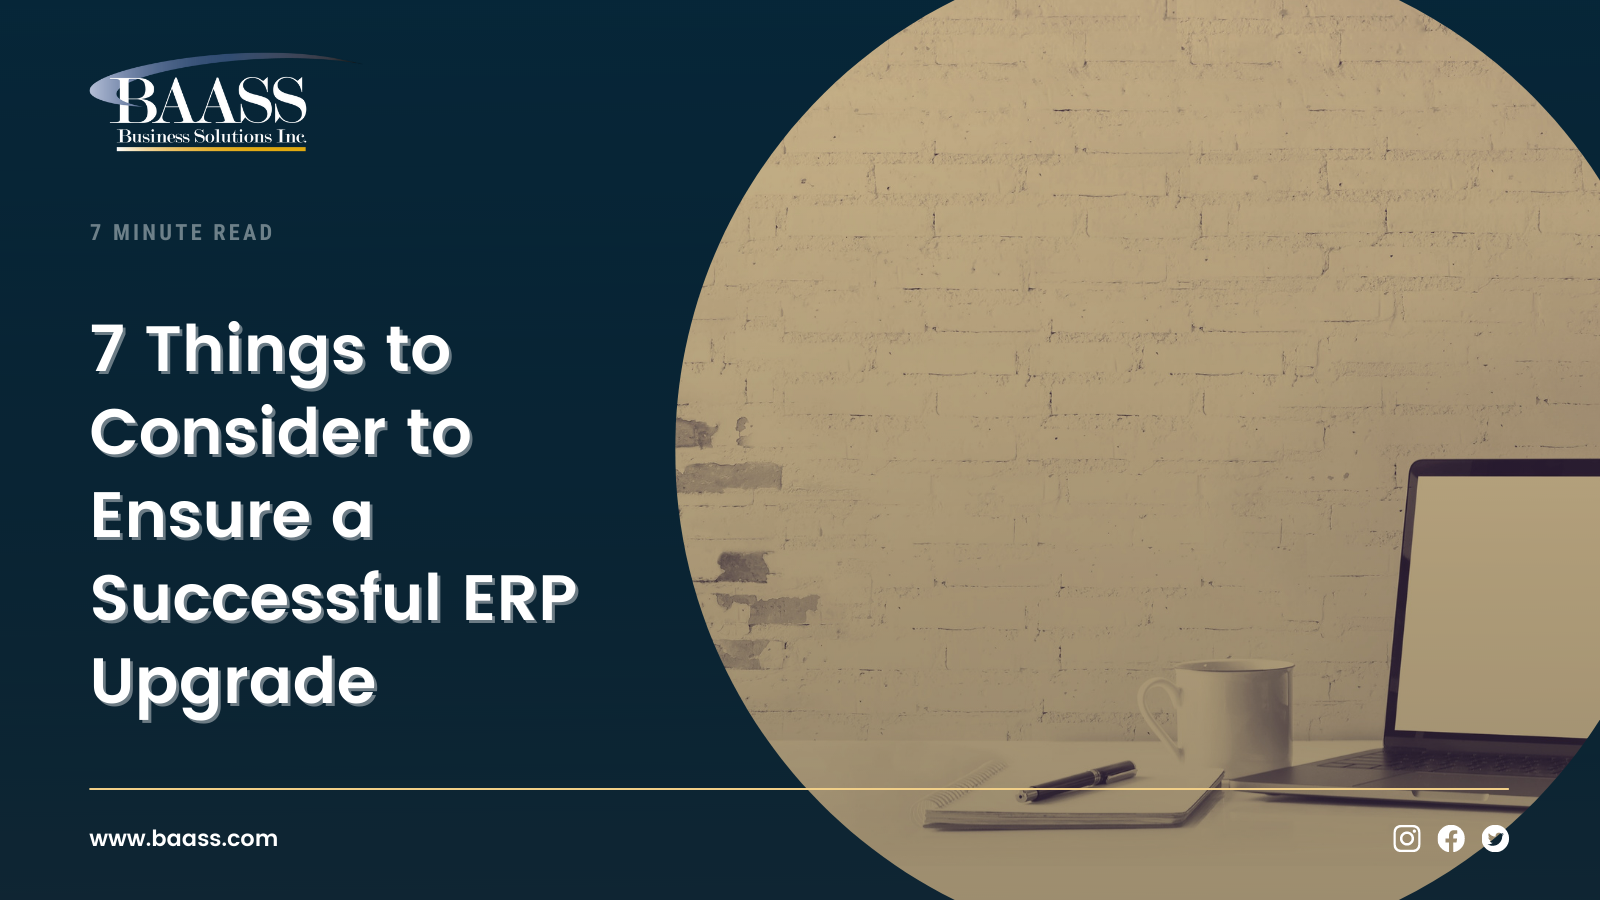 7 Things to Consider to Ensure a Successful ERP Upgrade